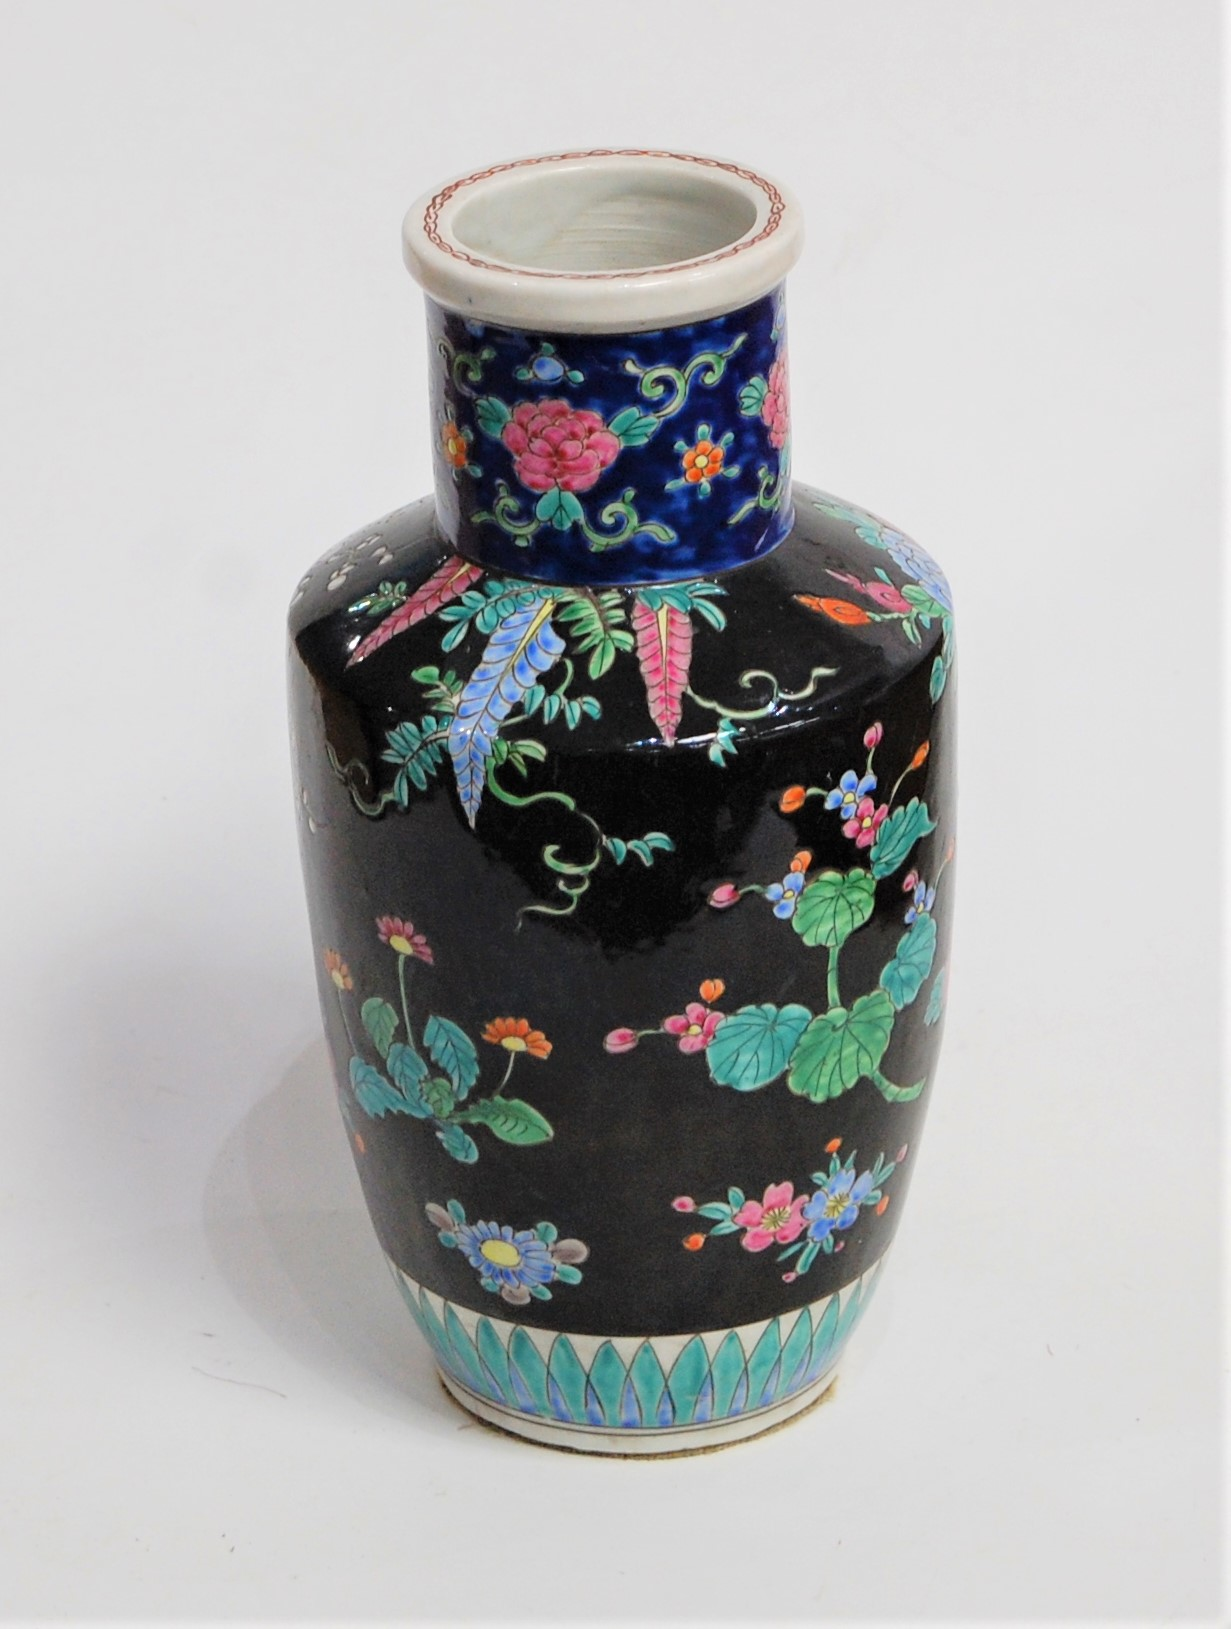 Lot 29 - A Chinese stoneware vase, of baluster form, on a black ground enamel decorated with flowers, h.31cm